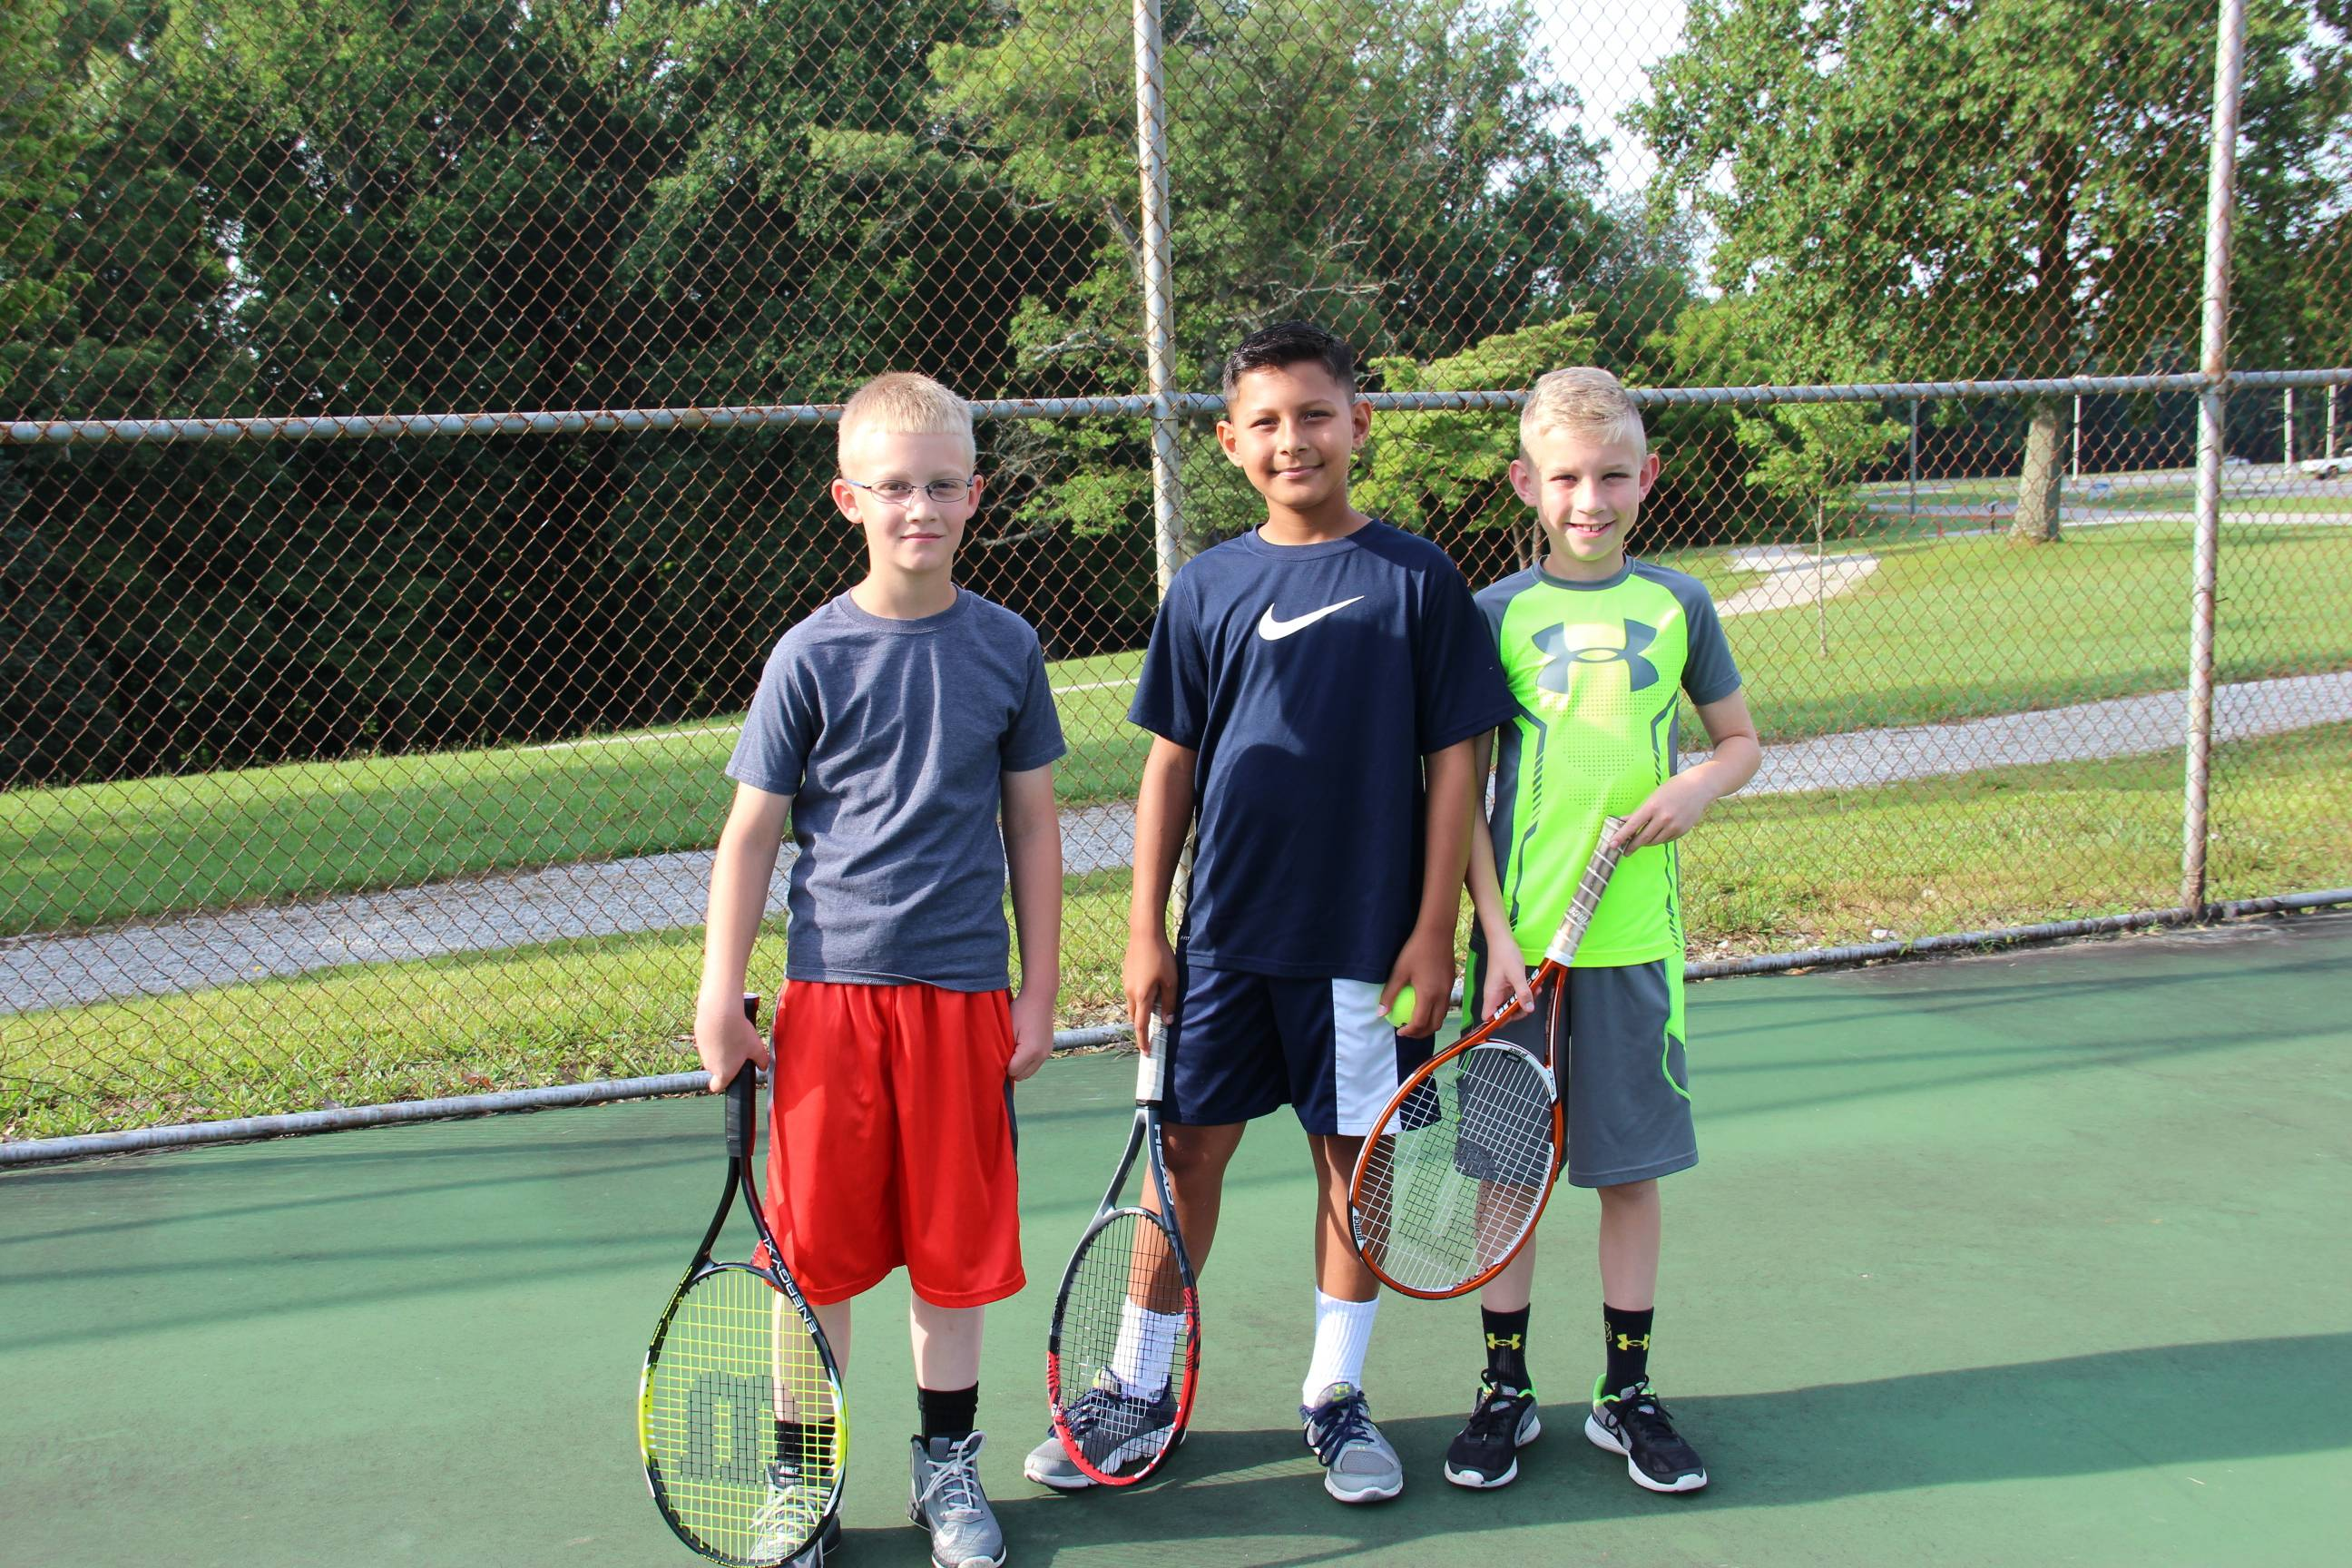 group of boys on tennis field